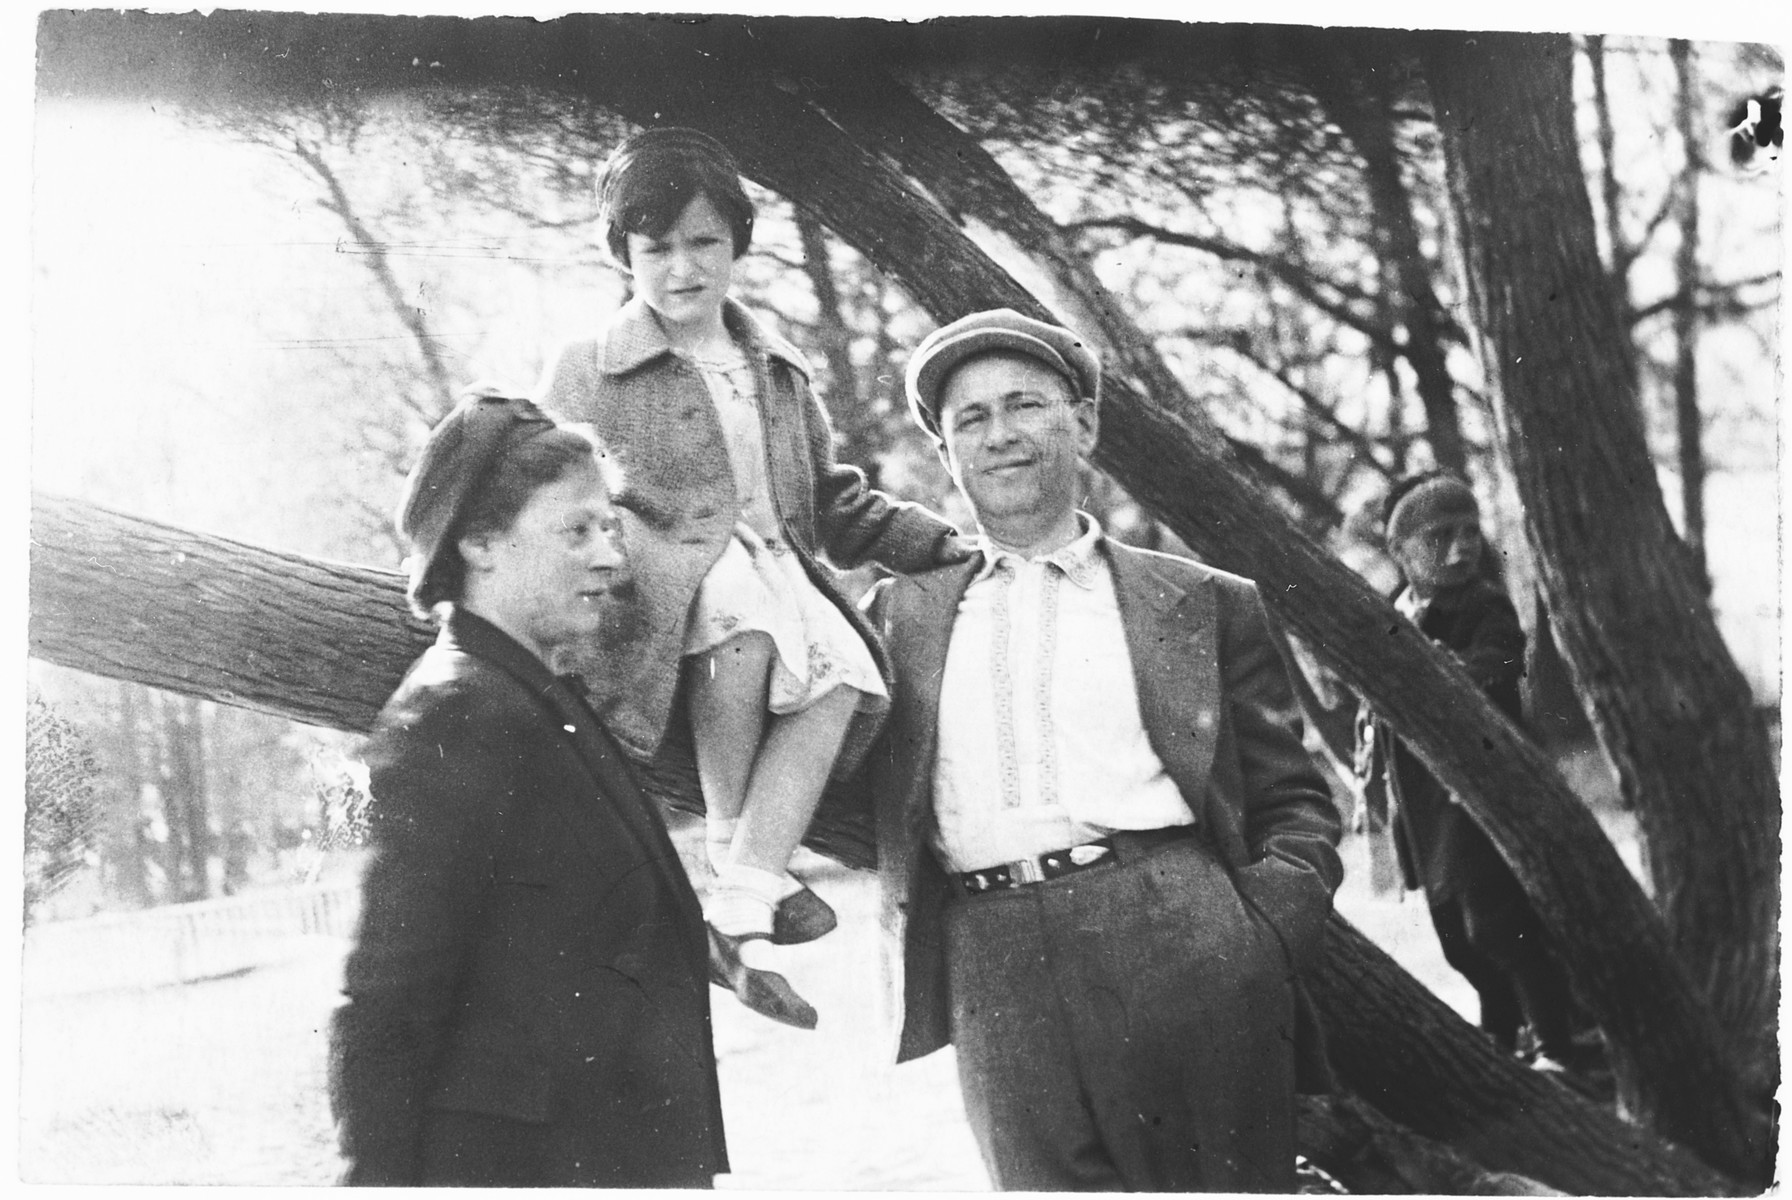 Portrait of the Schneidman family on an excursion to a park in Leningrad.  From left to right are Maria, Galina and Ilya Schneidman.